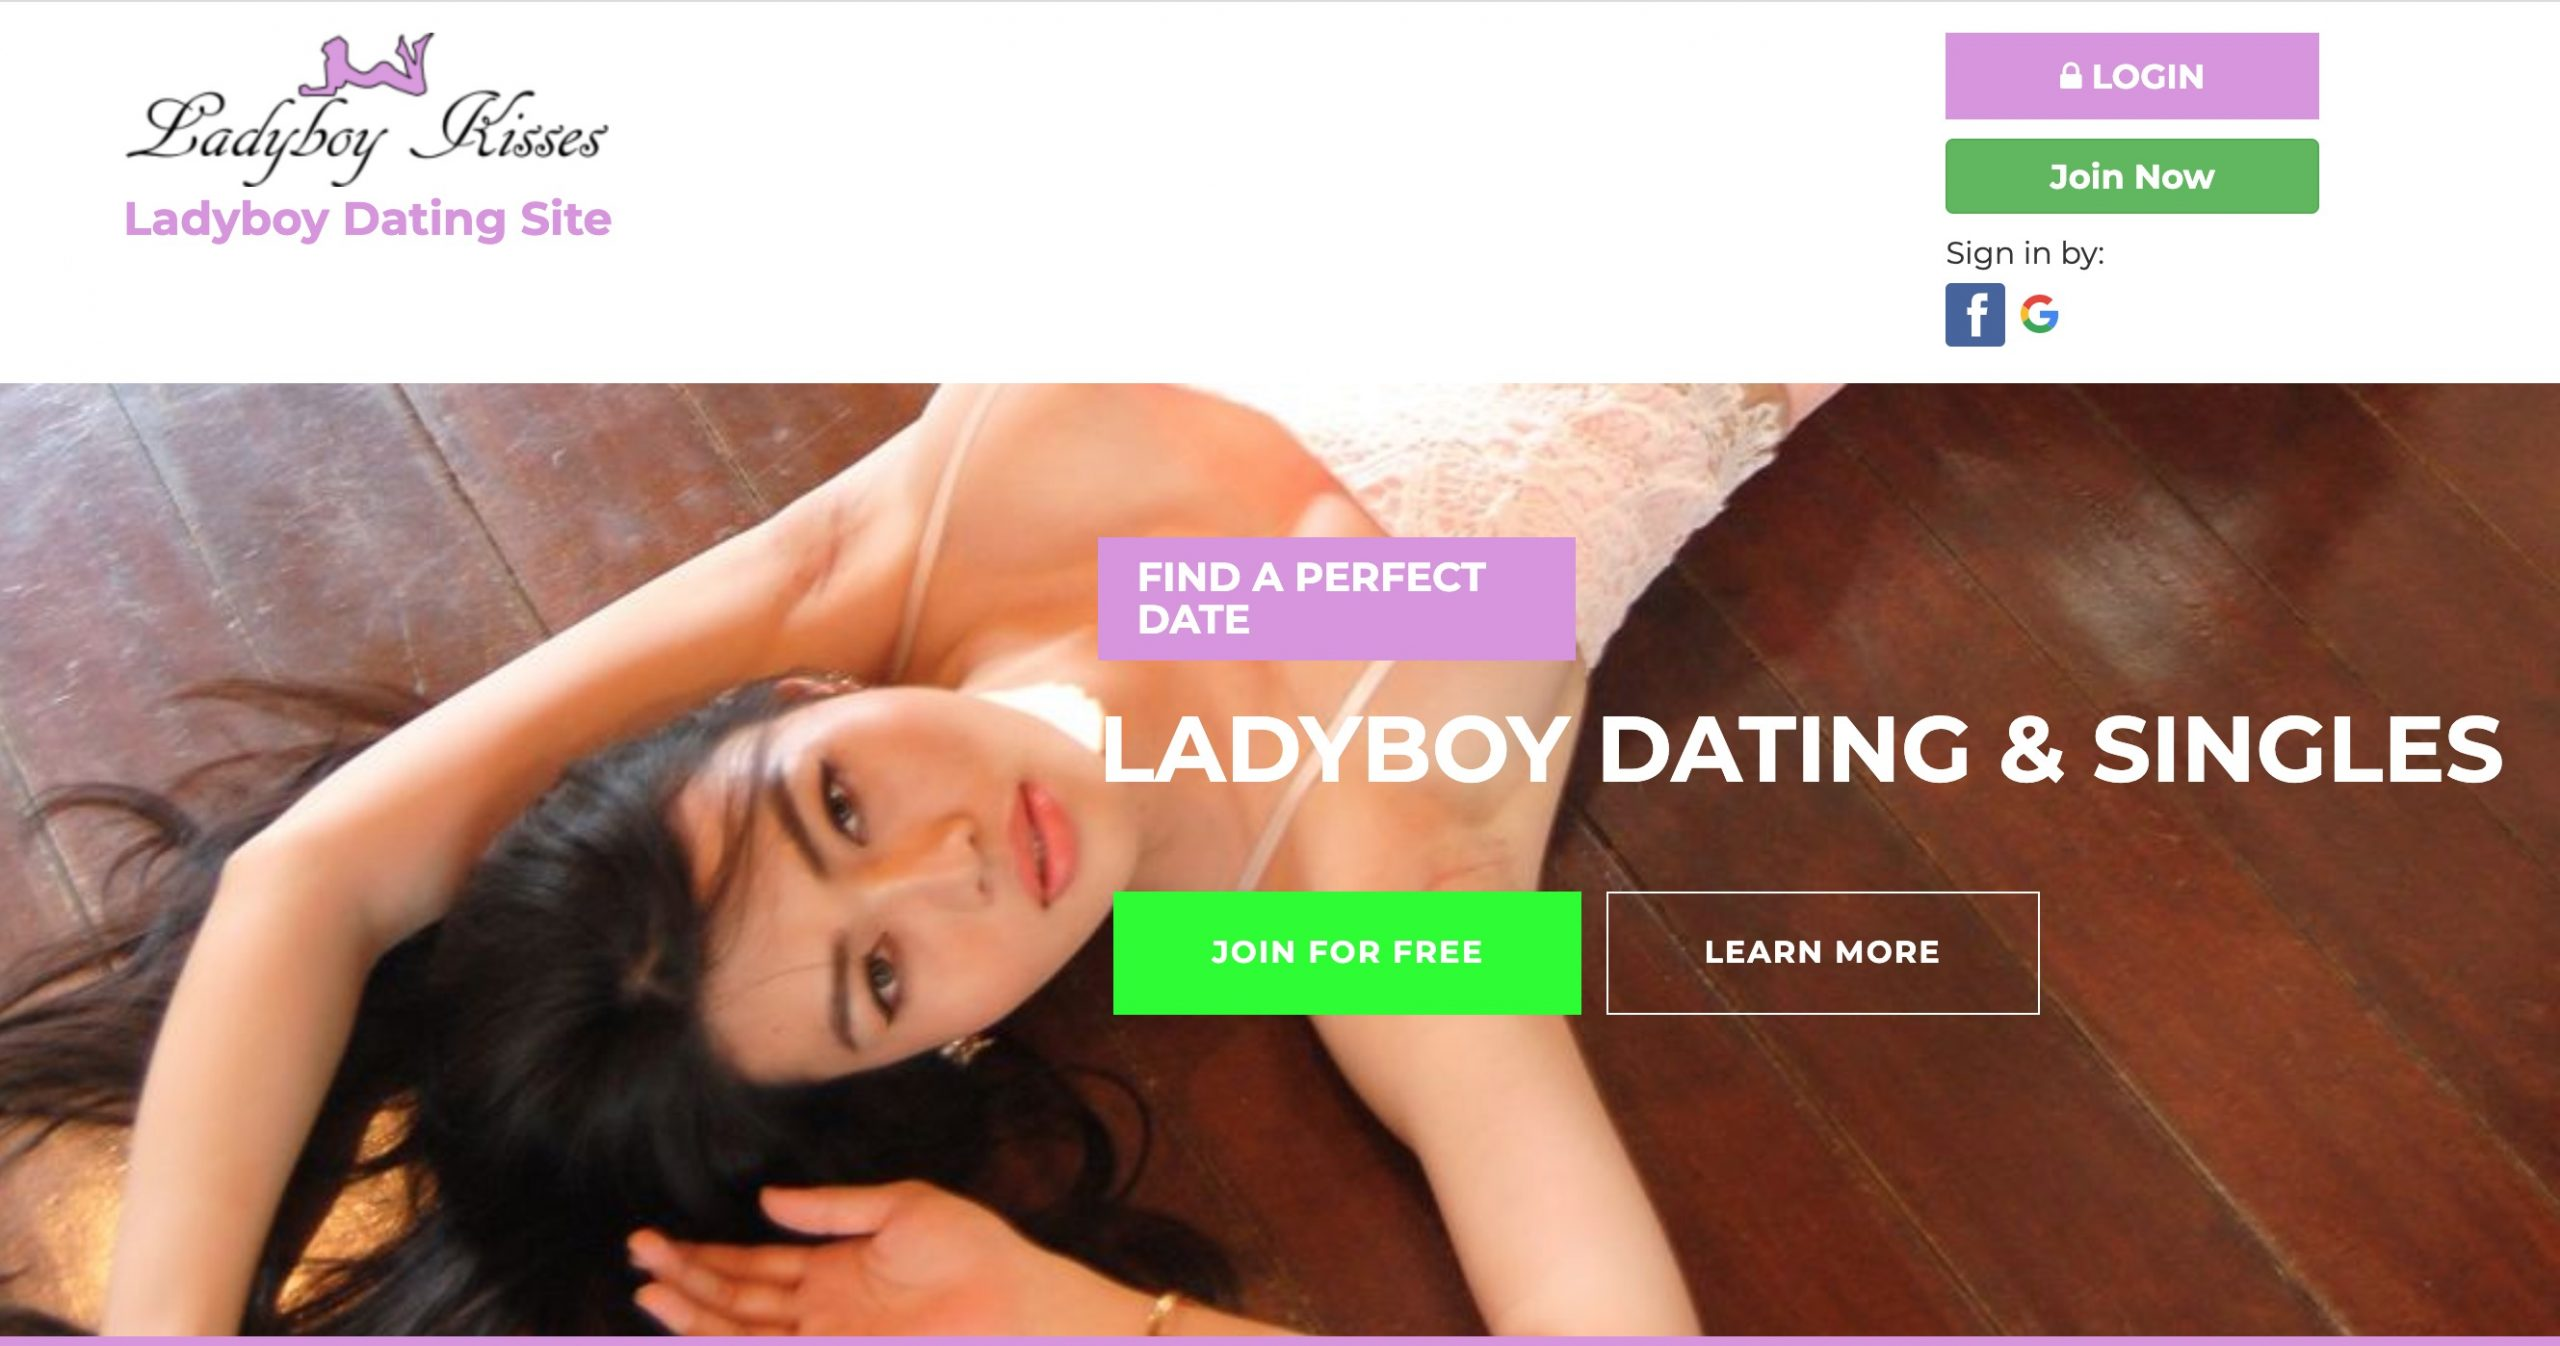 LadyBoyKisses main page